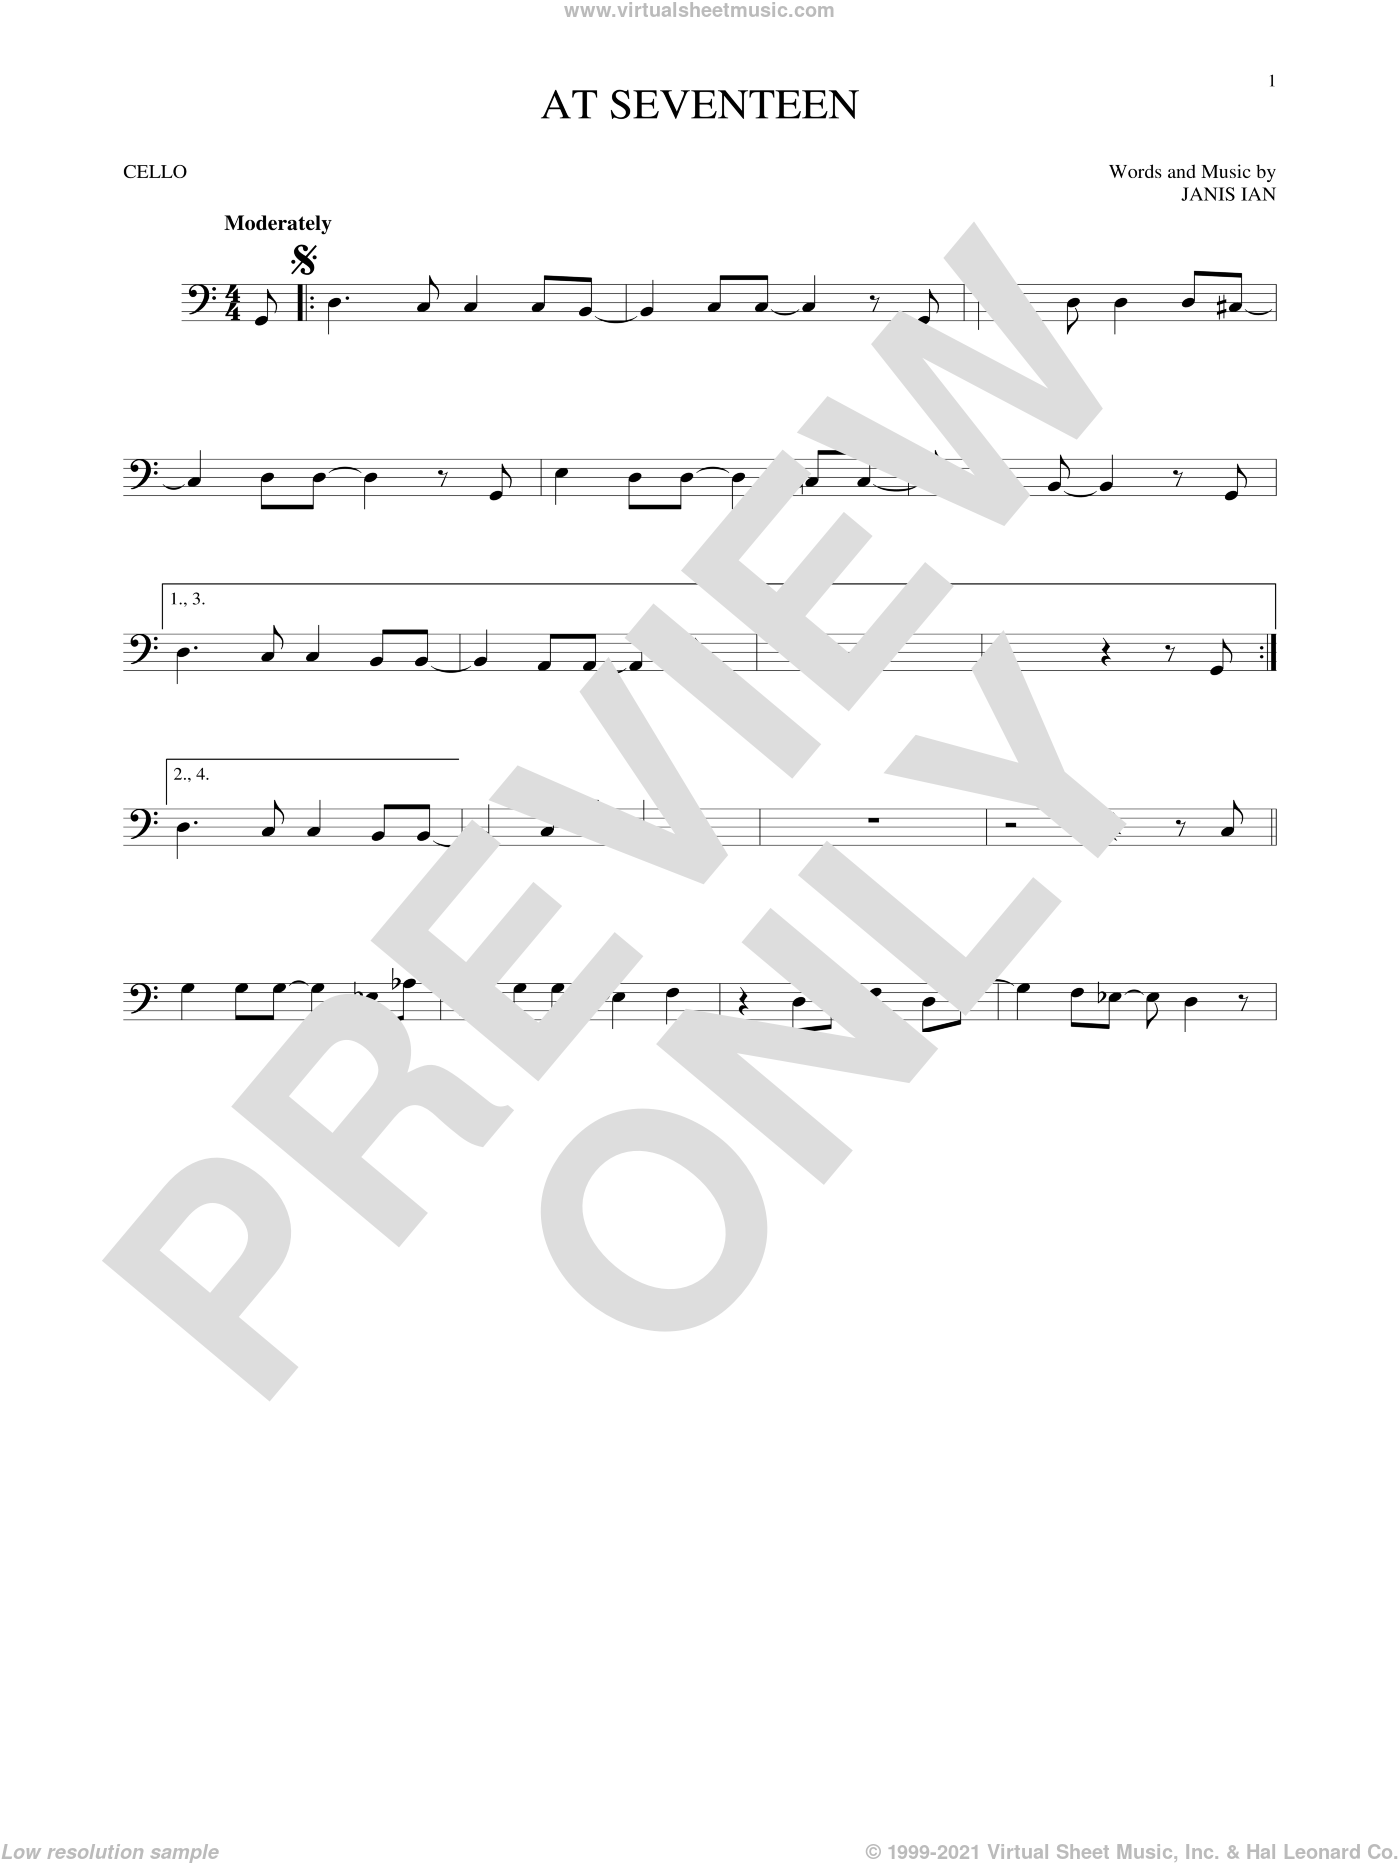 At Seventeen sheet music for cello solo by Janis Ian, intermediate skill level